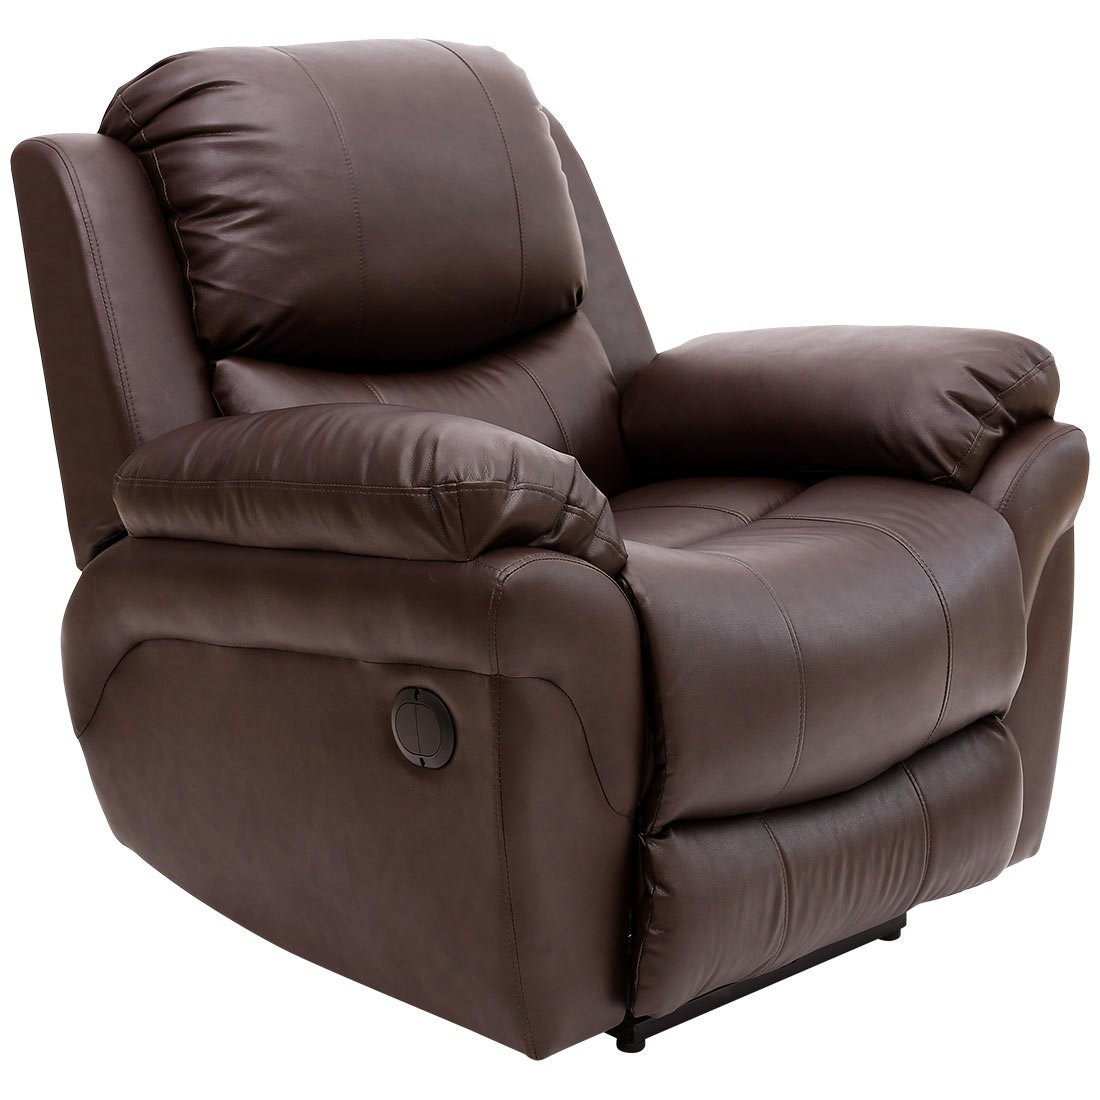 MADISON ELECTRIC LEATHER AUTOMATIC RECLINER ARMCHAIR SOFA HOME LOUNGE CHAIR (Brown)  sc 1 st  Amazon UK & Amazon.co.uk: Recliners - Chairs: Home u0026 Kitchen islam-shia.org